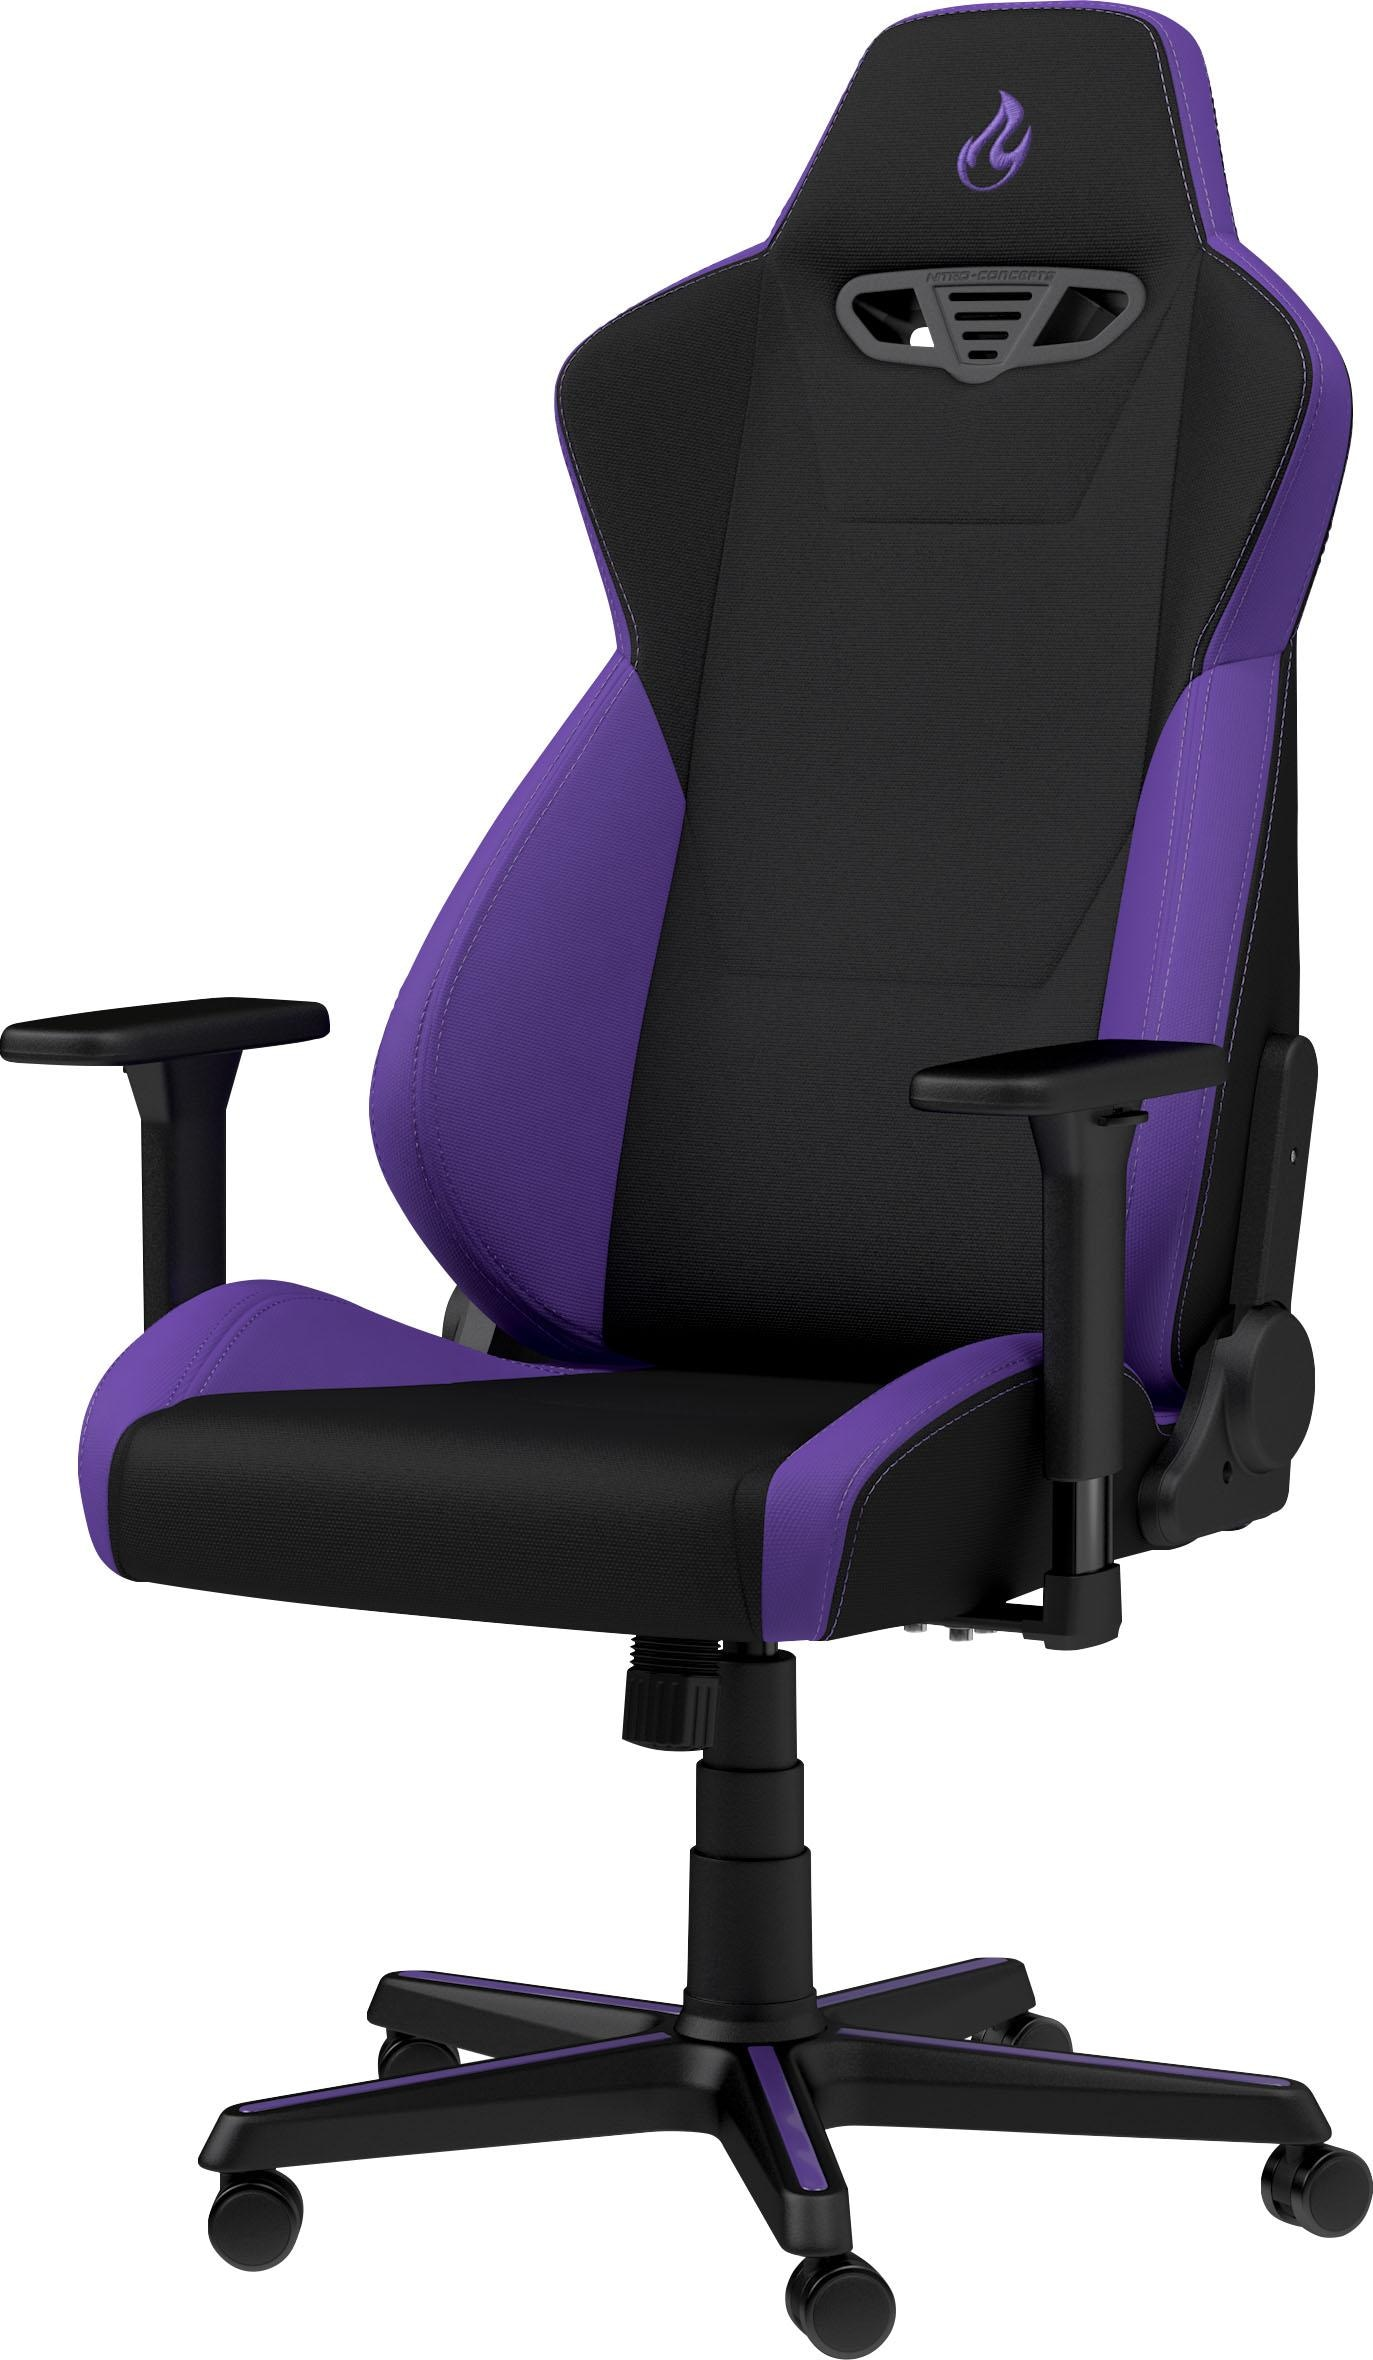 Https Www Universal At P Nitro Concepts Gaming Stuhl S300 Gaming Chair Aklbb662186736